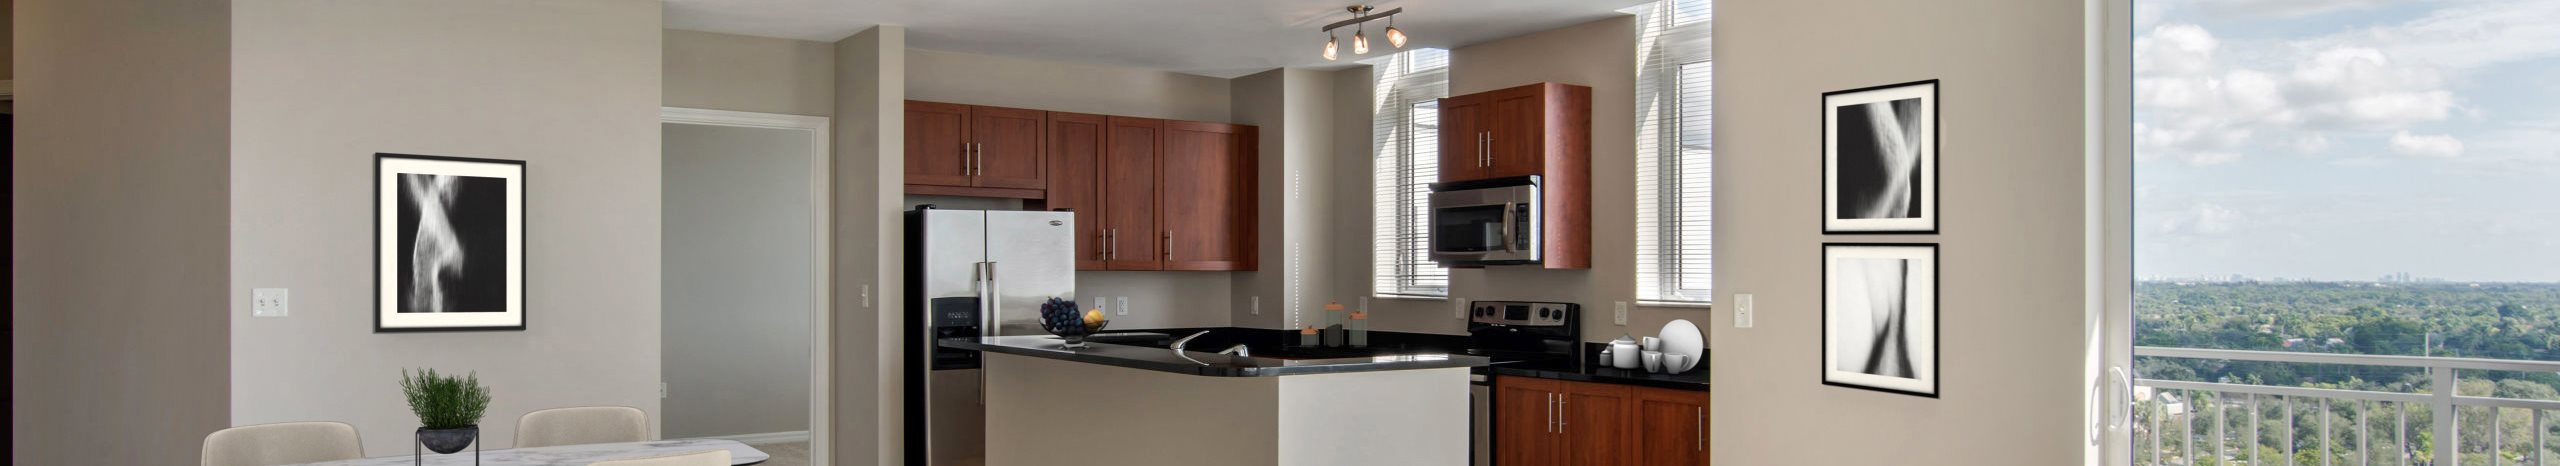 Midtown 24 Apartments virtual model, living room and kitchen with patio view